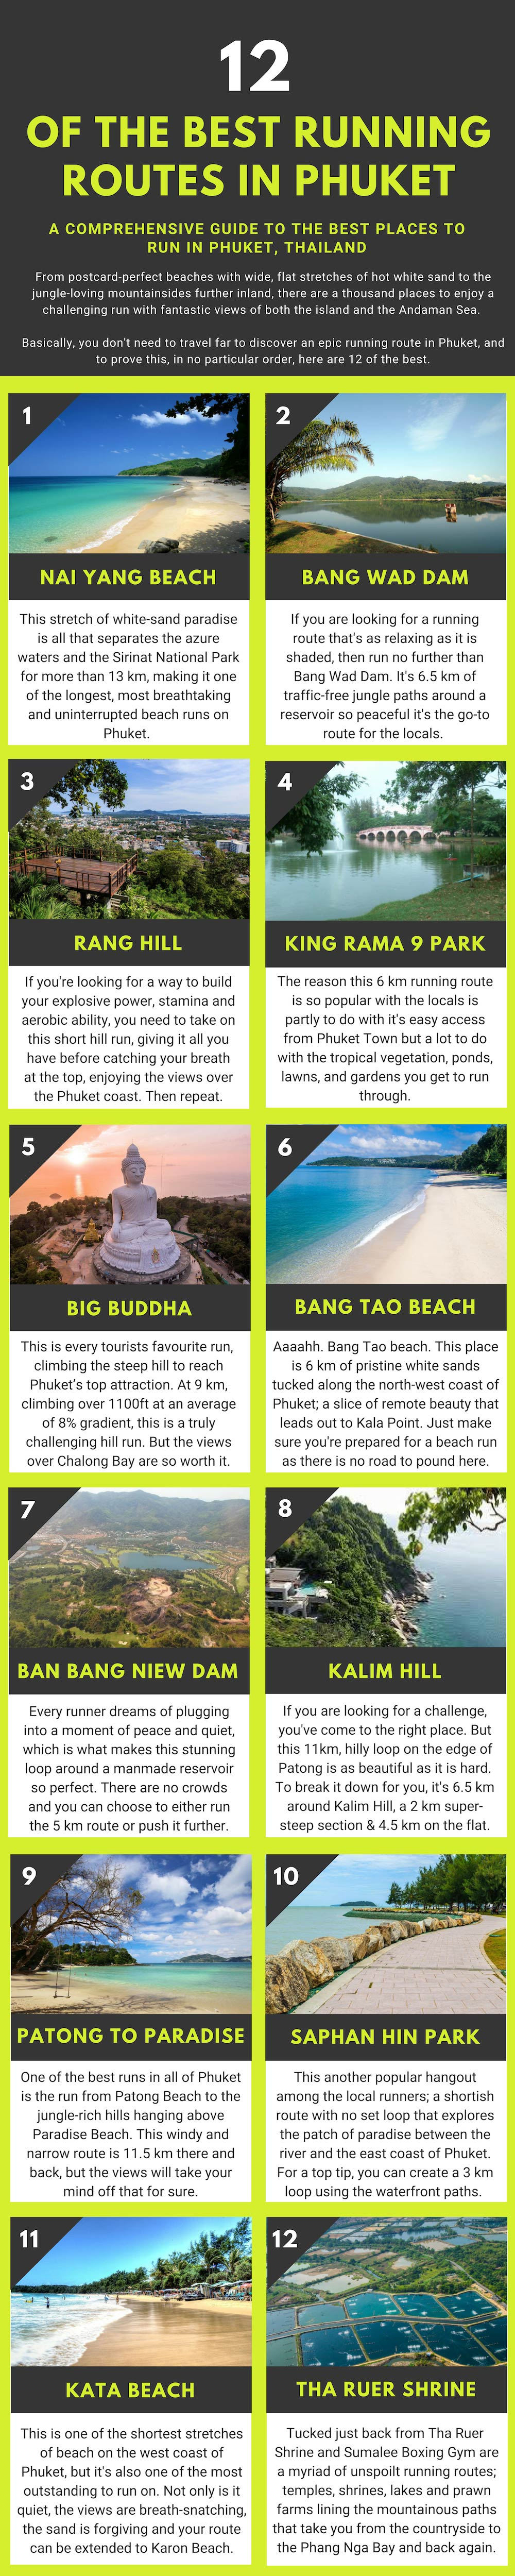 12 of the Best Running Routes in Phuket